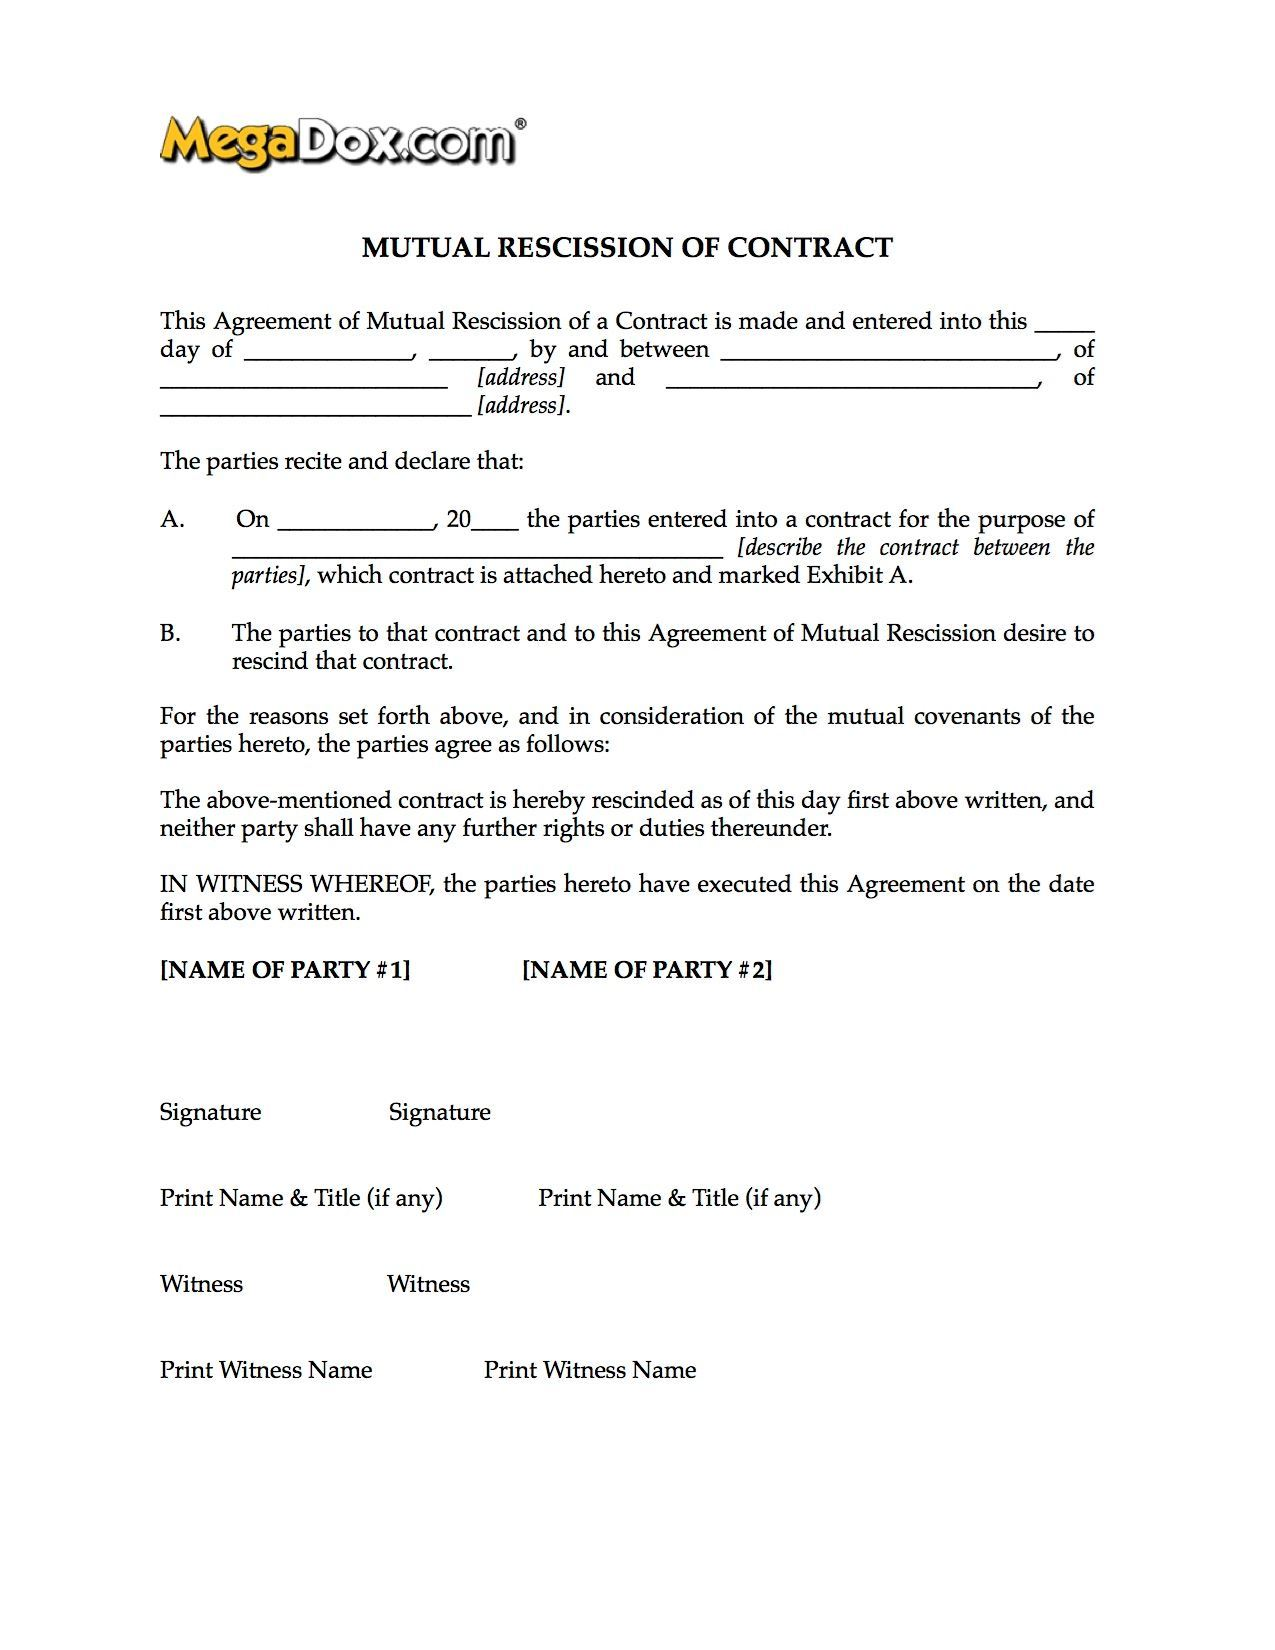 Beautiful Mutual Rescission Of Contract Form Idea Mutual Agreement Contract